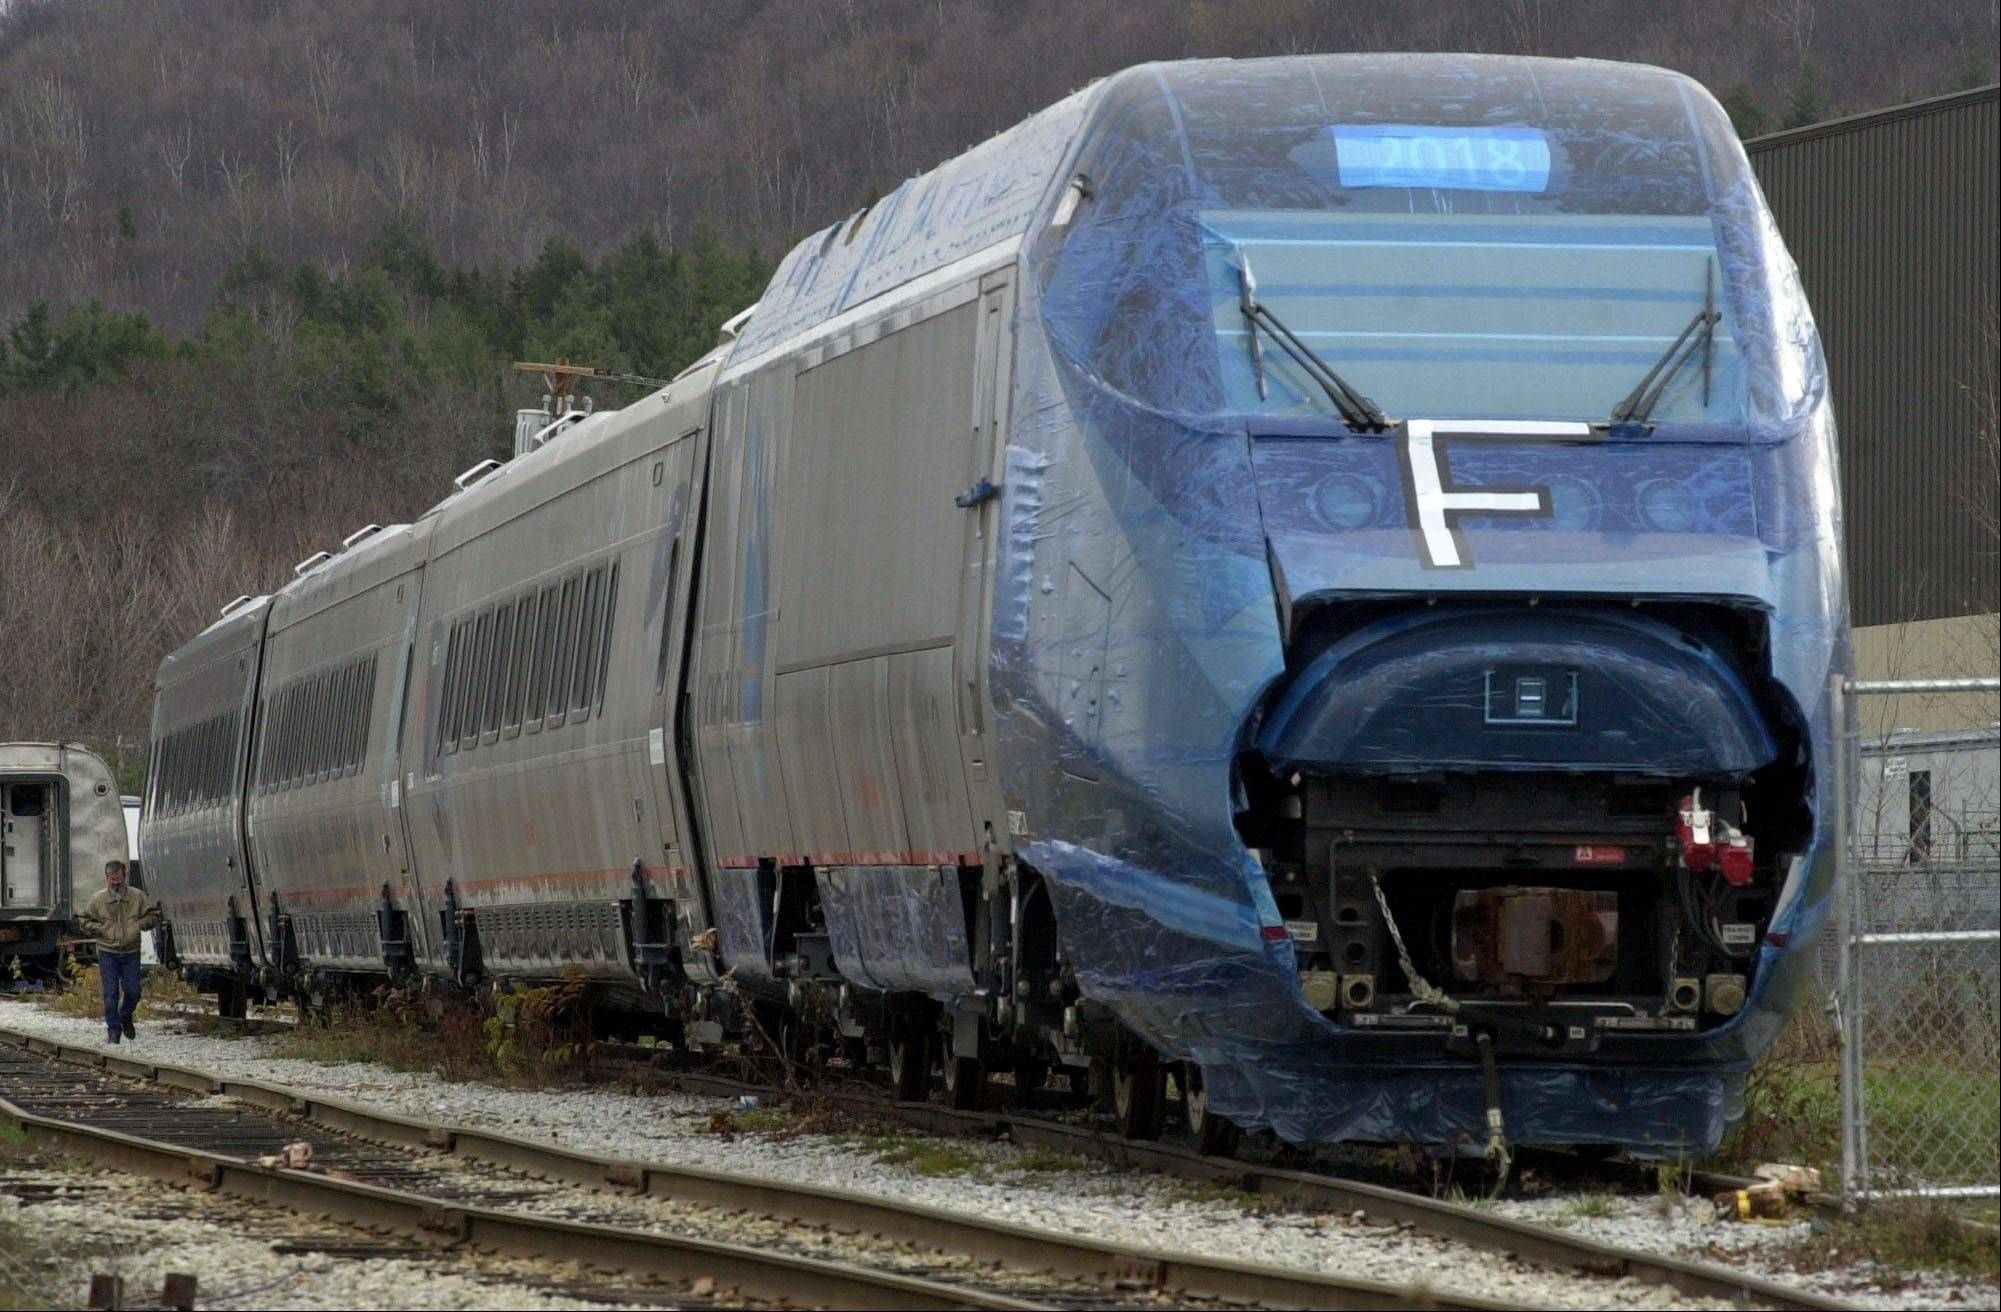 Acela Express equipment will be used for the high-speed raid tests Amtrak planned to start Monday evening along the East Coast.